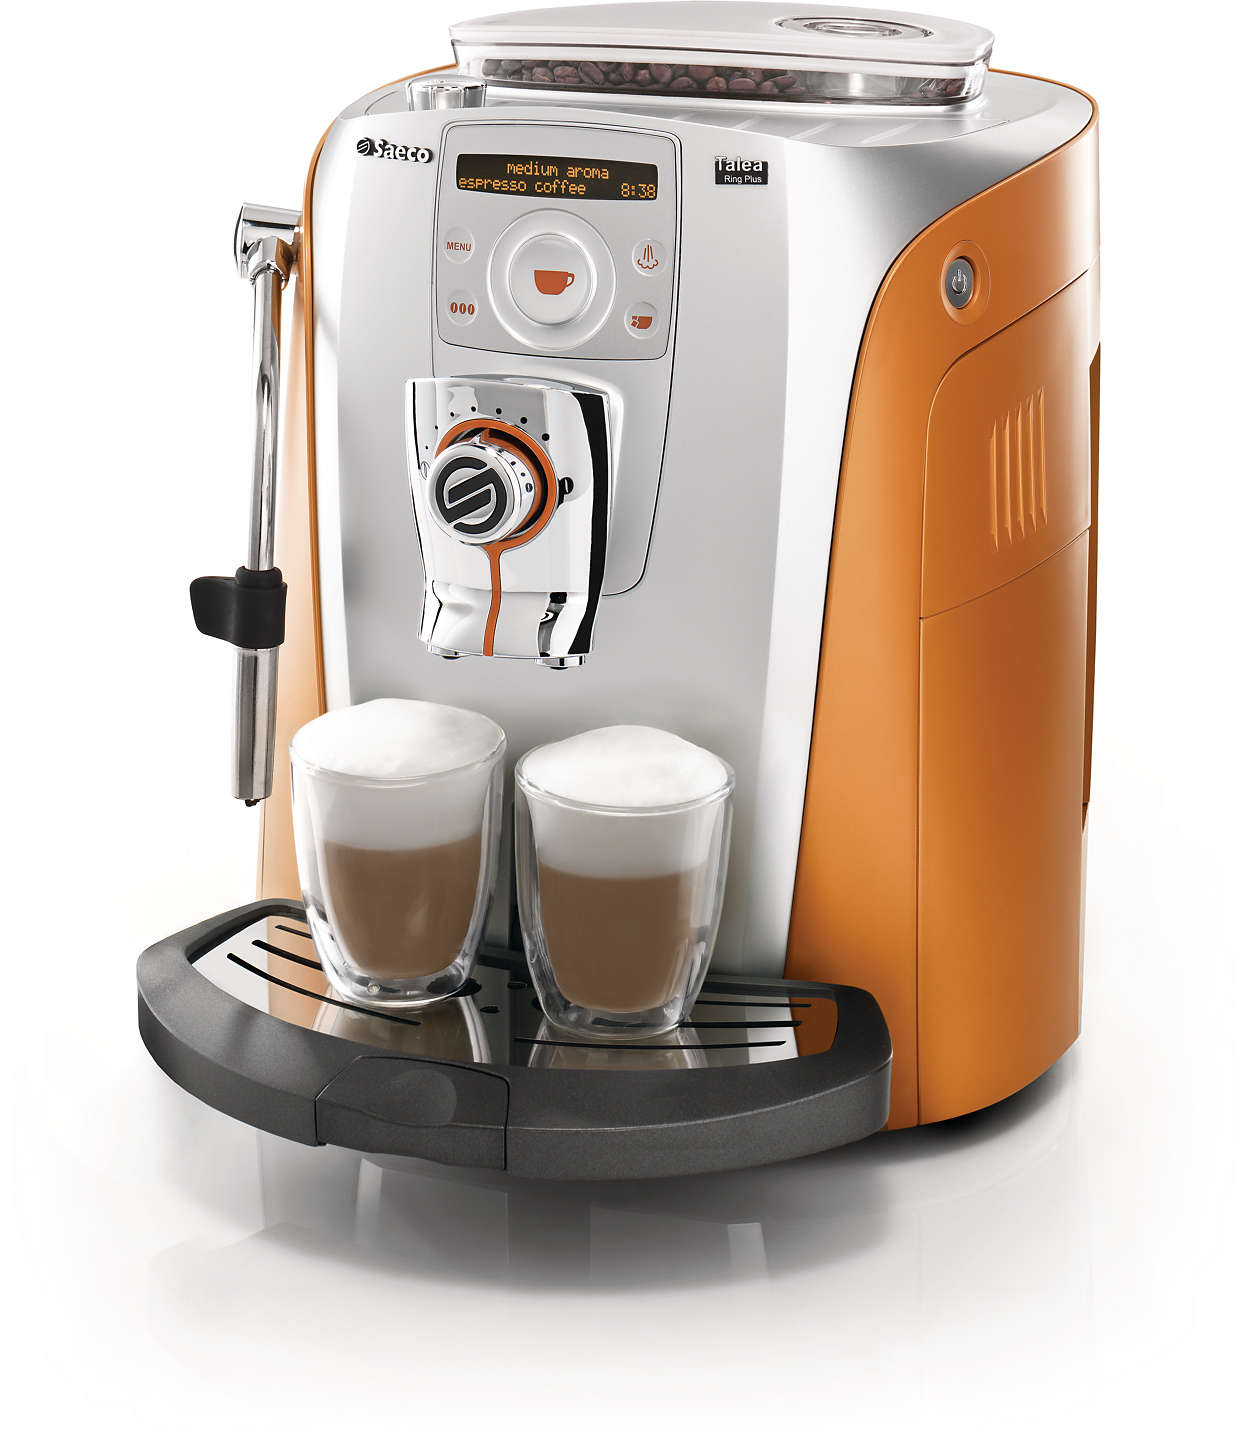 Talea Super Automatic Espresso Machine Ri9826 01 Saeco